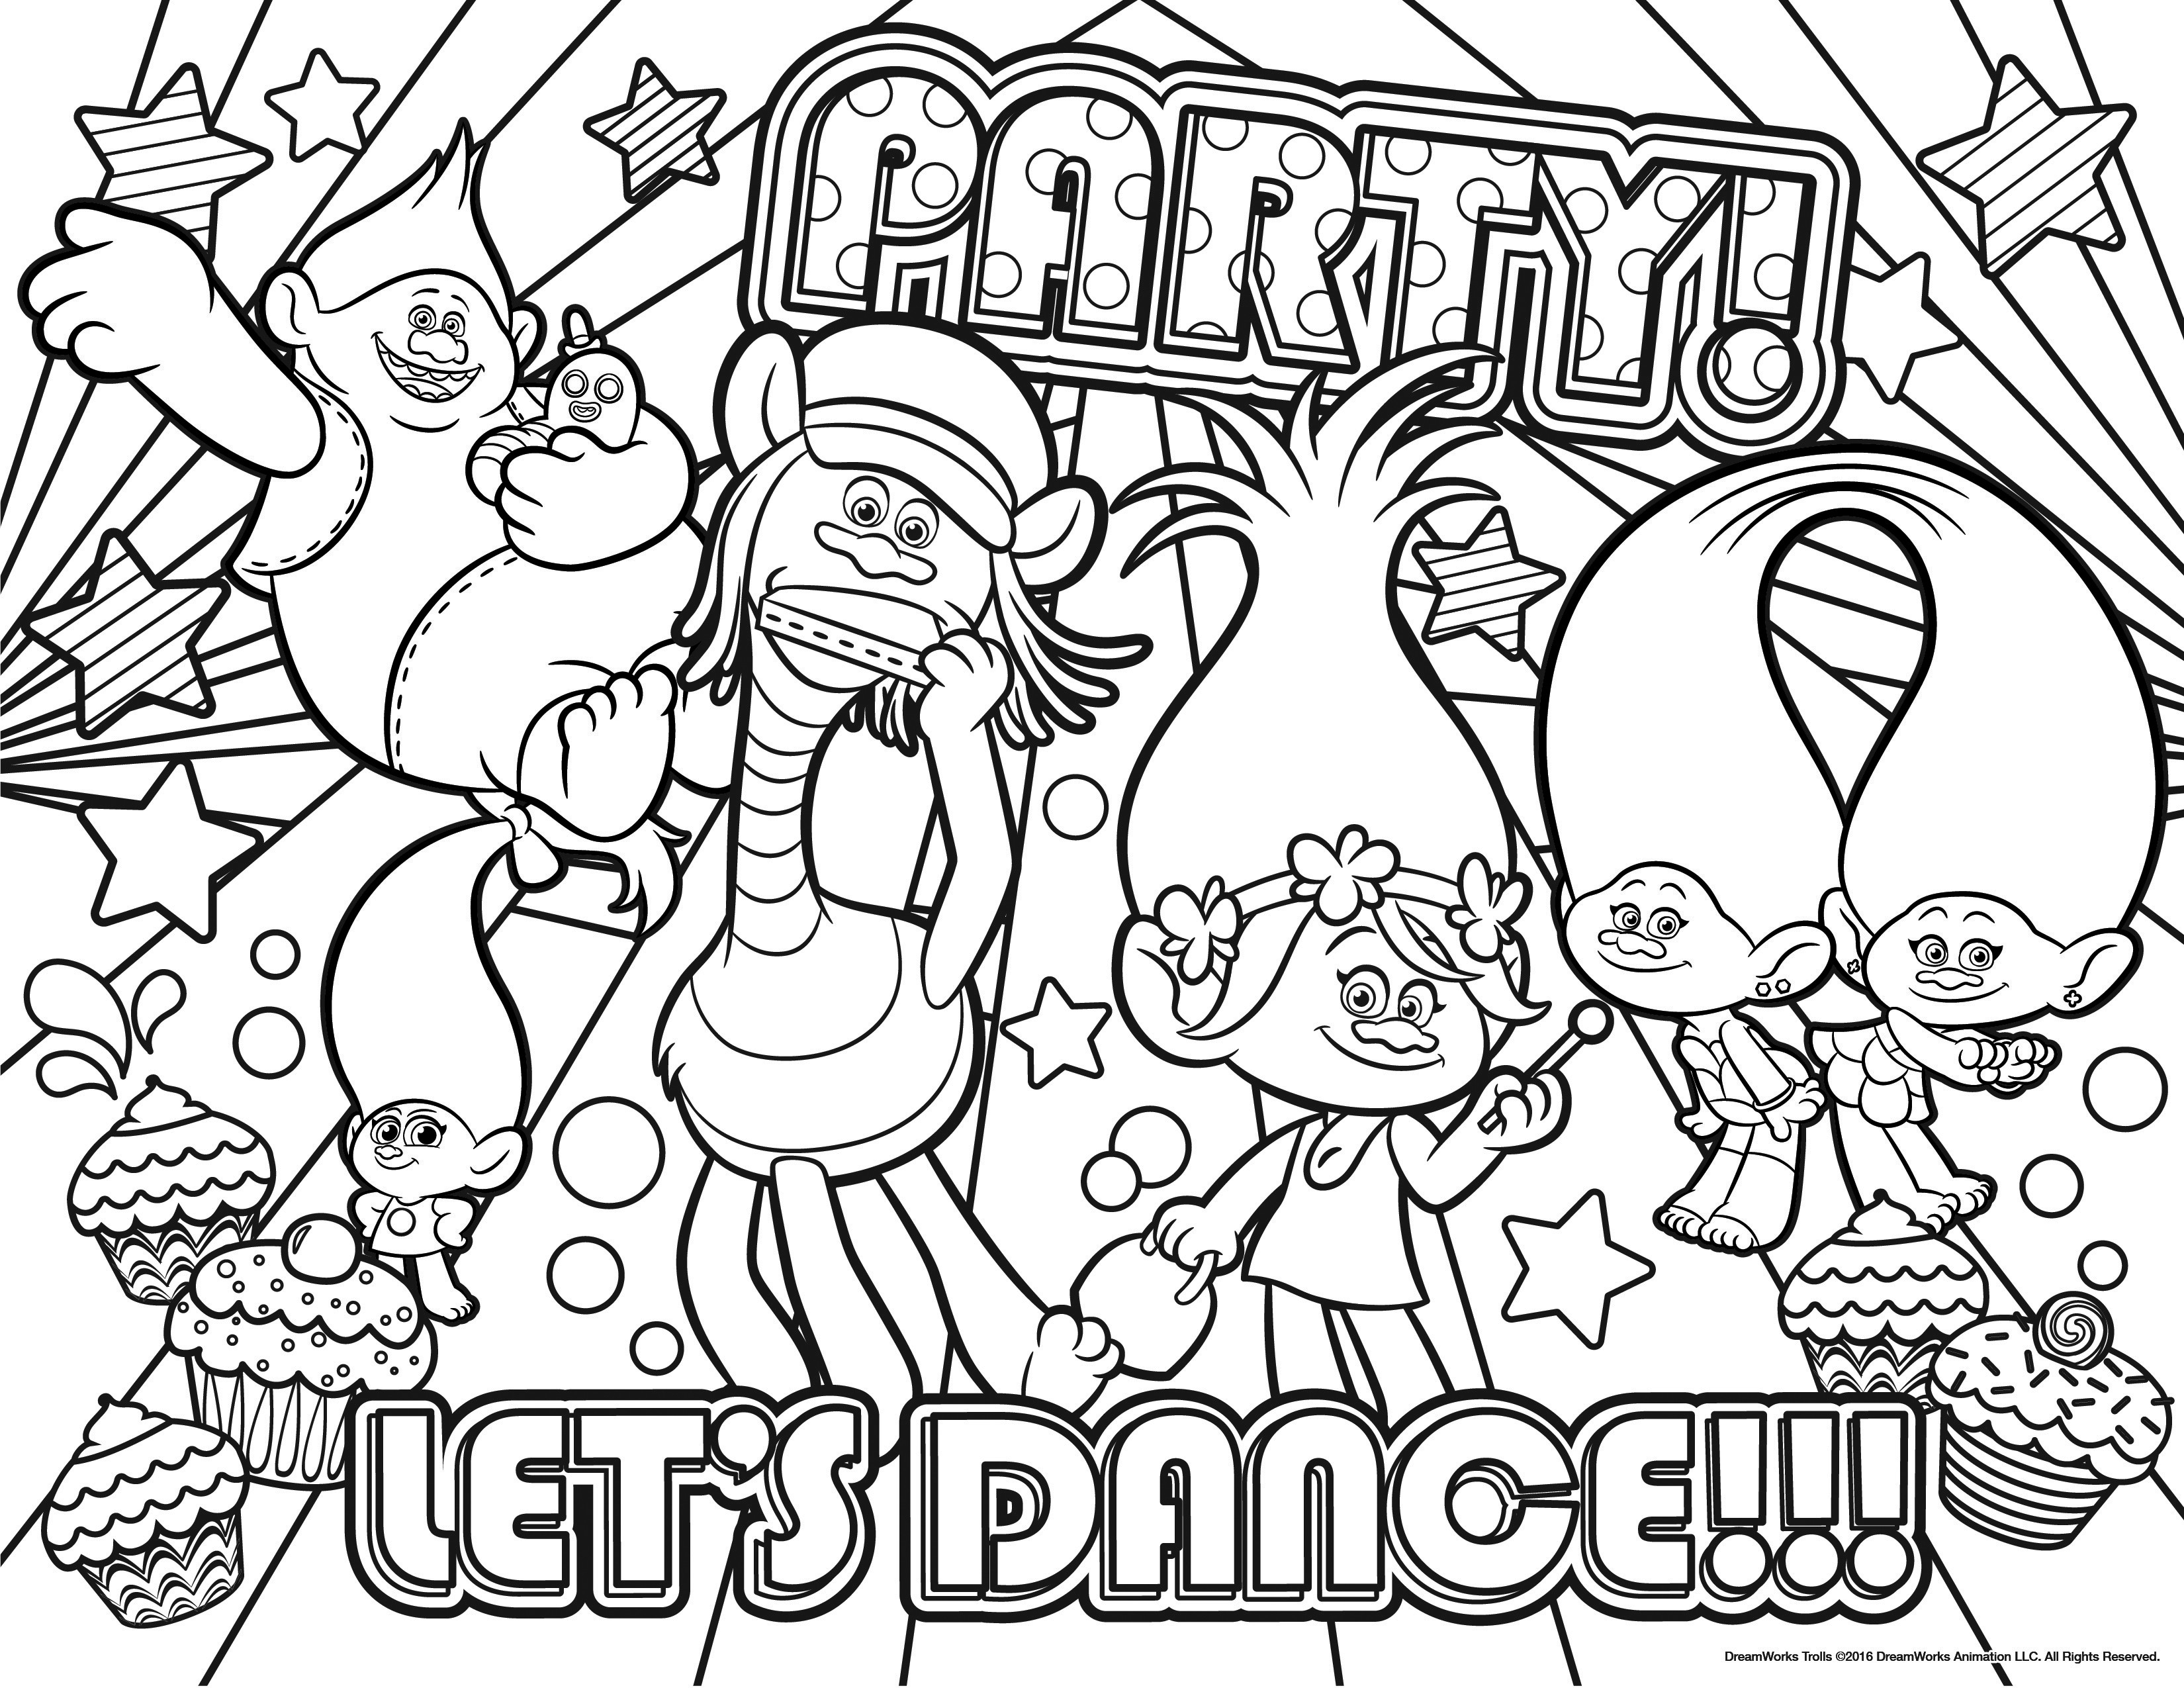 Troll Coloring Pages New Free Disney Trolls Printable Design 3300 - Free Printable Troll Coloring Pages